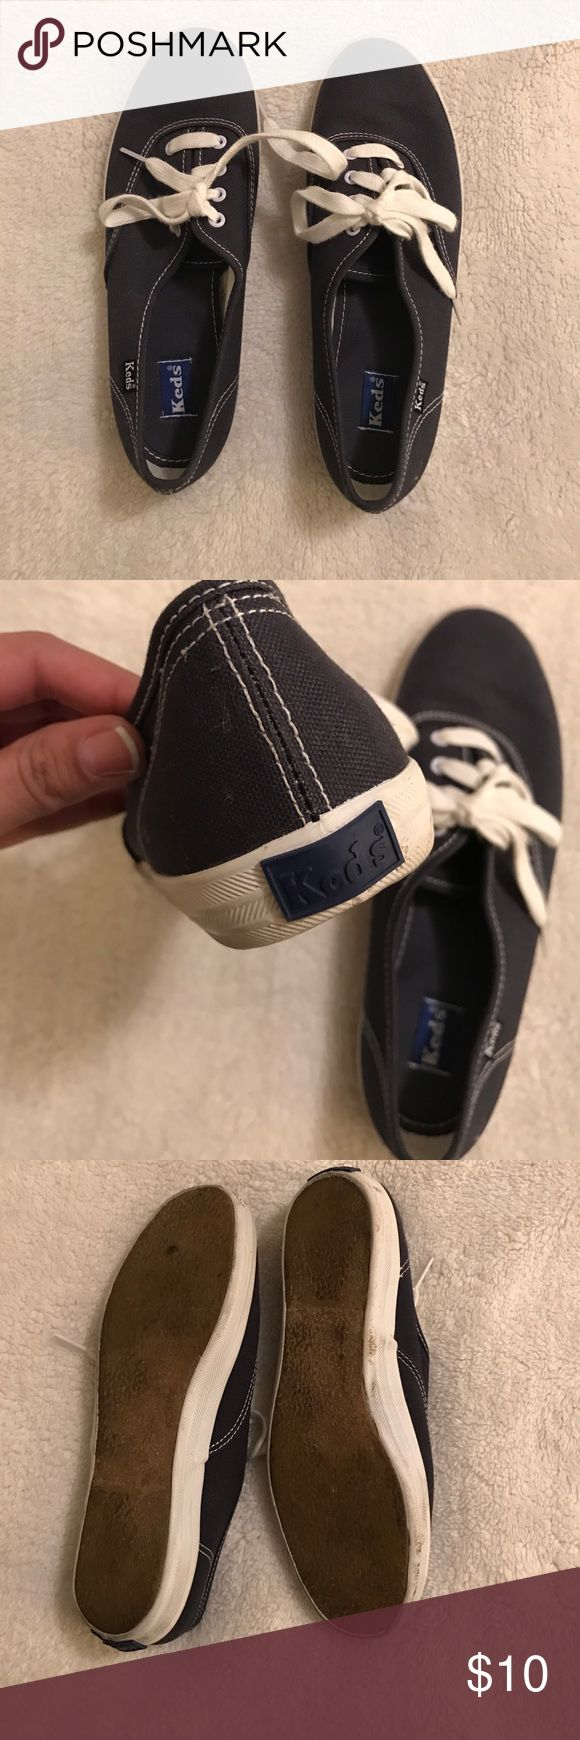 Keds tennis shoes Well loved, they look great. Perfect staple for any wardrobe. If you need additional pictures, let me know!😁 Keds Shoes Sneakers